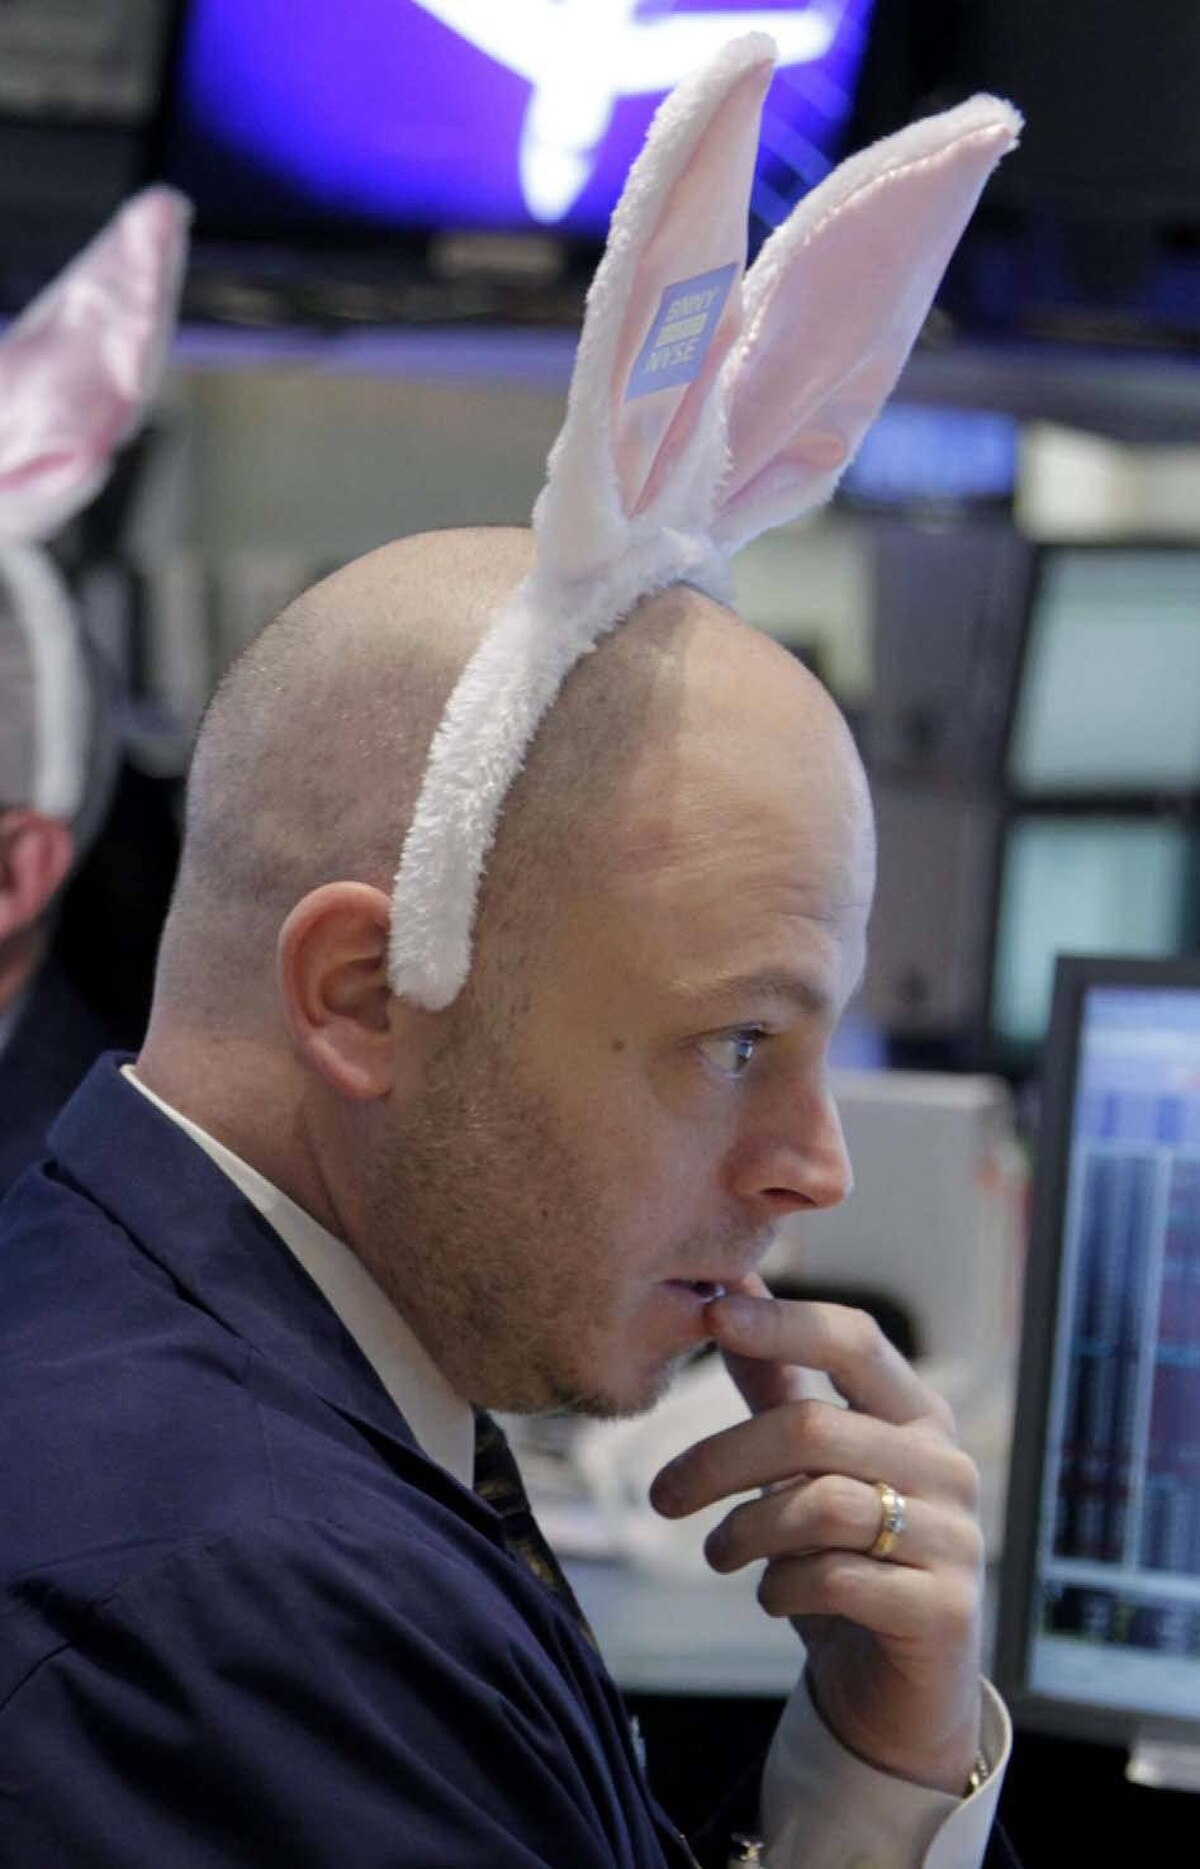 Meanwhile, on Wall Street, a trader wears pink bunny ears in an effort to humanize himself in your eyes as he ponders a way to sell the debt you owe on your overpriced house back to you as an investment so that, when the day comes that you lose your house because you can't make the mortgage payments, you also lose all your savings! Go Wall Street!